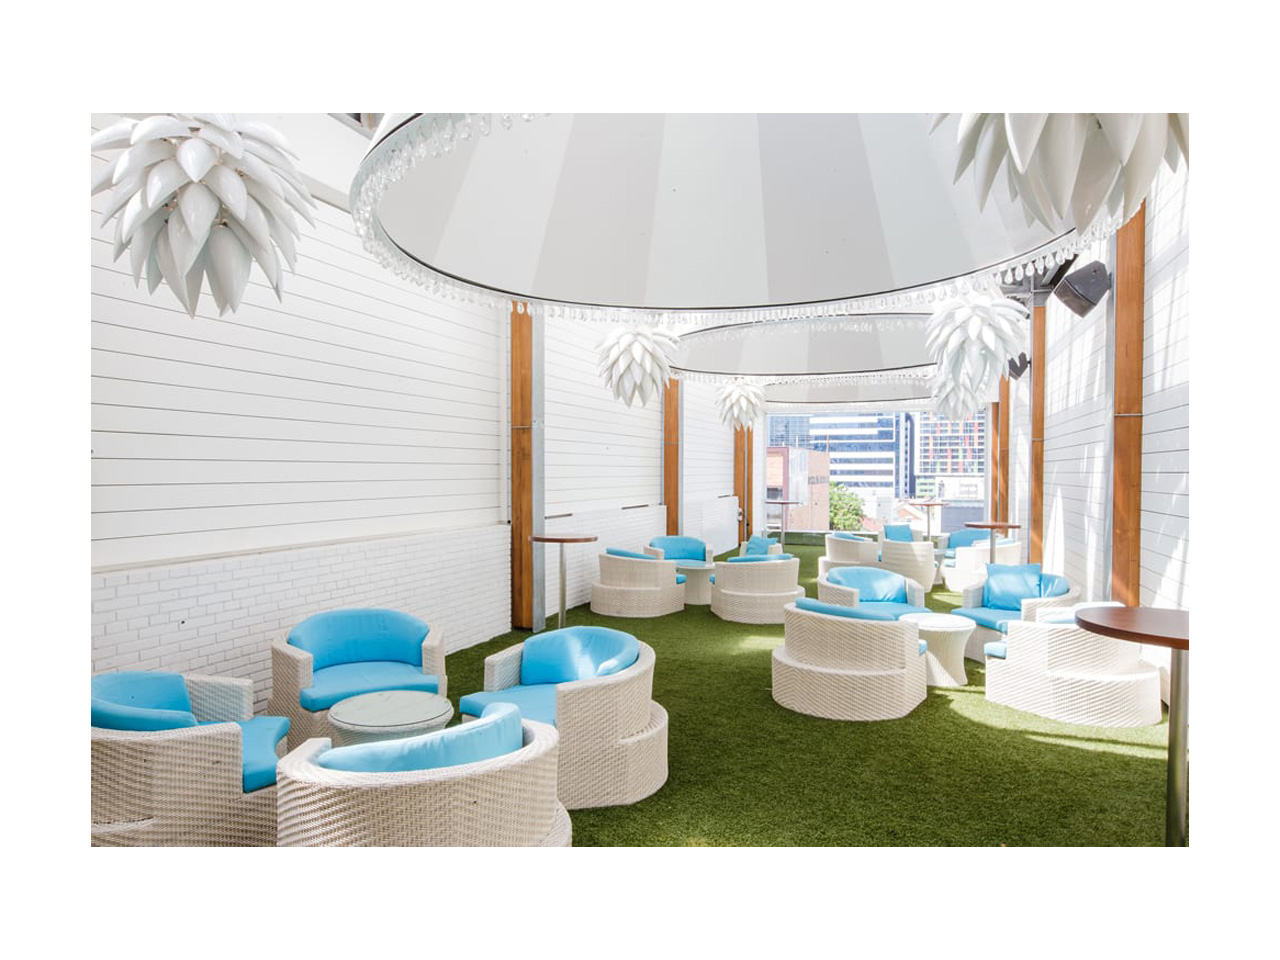 Semi-outdoor function room with white decor and blue and white individual seating with round tables